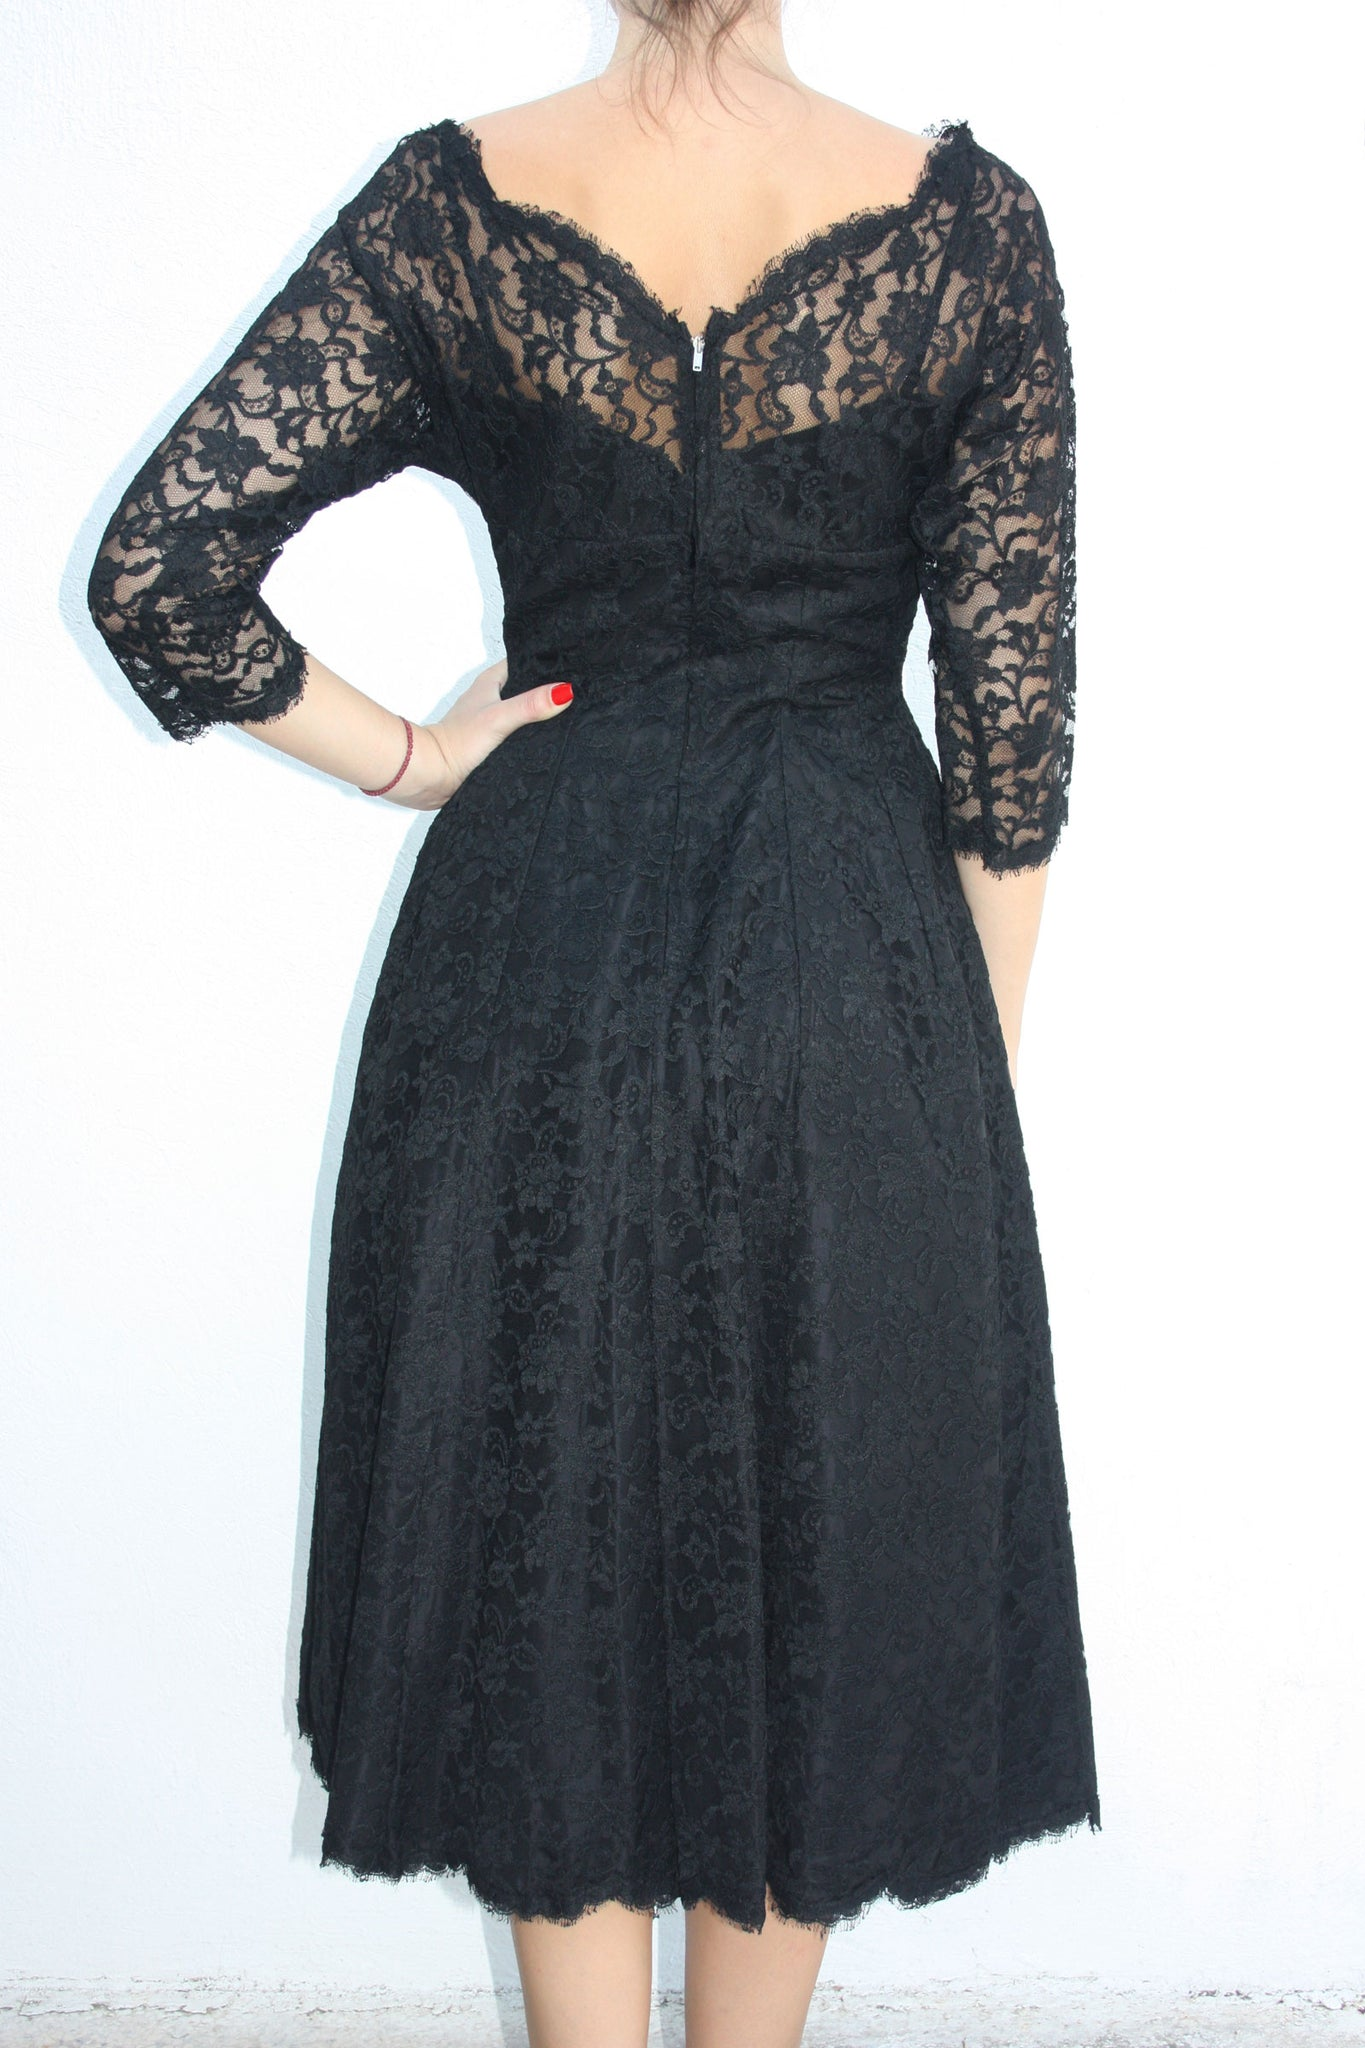 Vintage full swing vintage dress - Shop SoLovesVintage